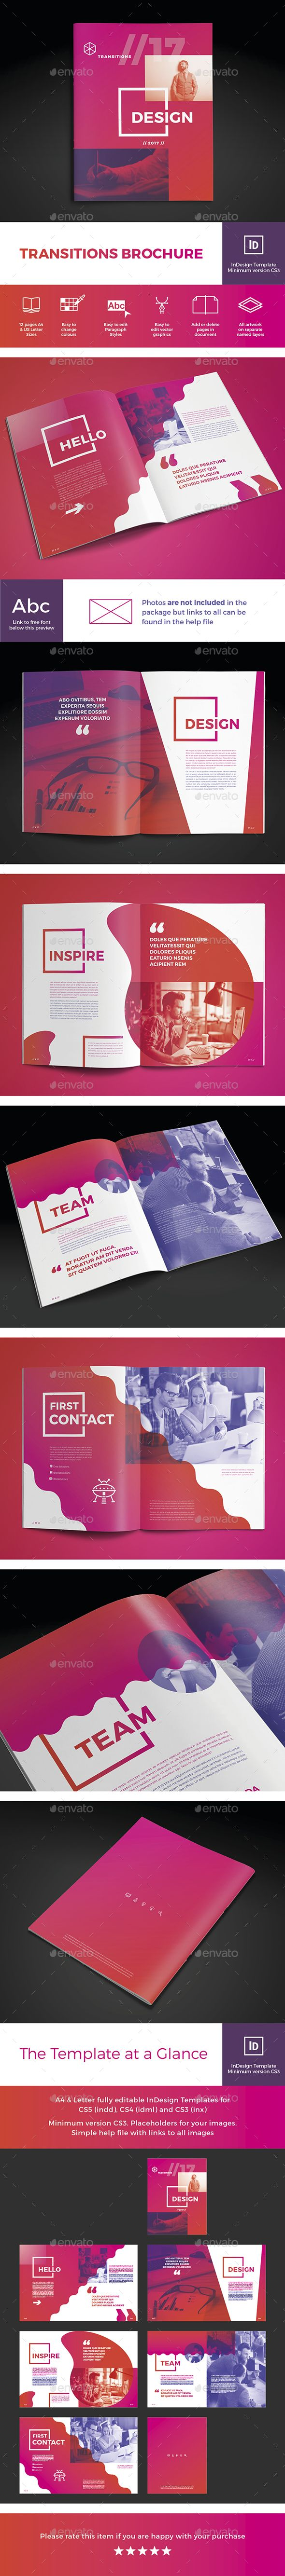 Transitions Brochure